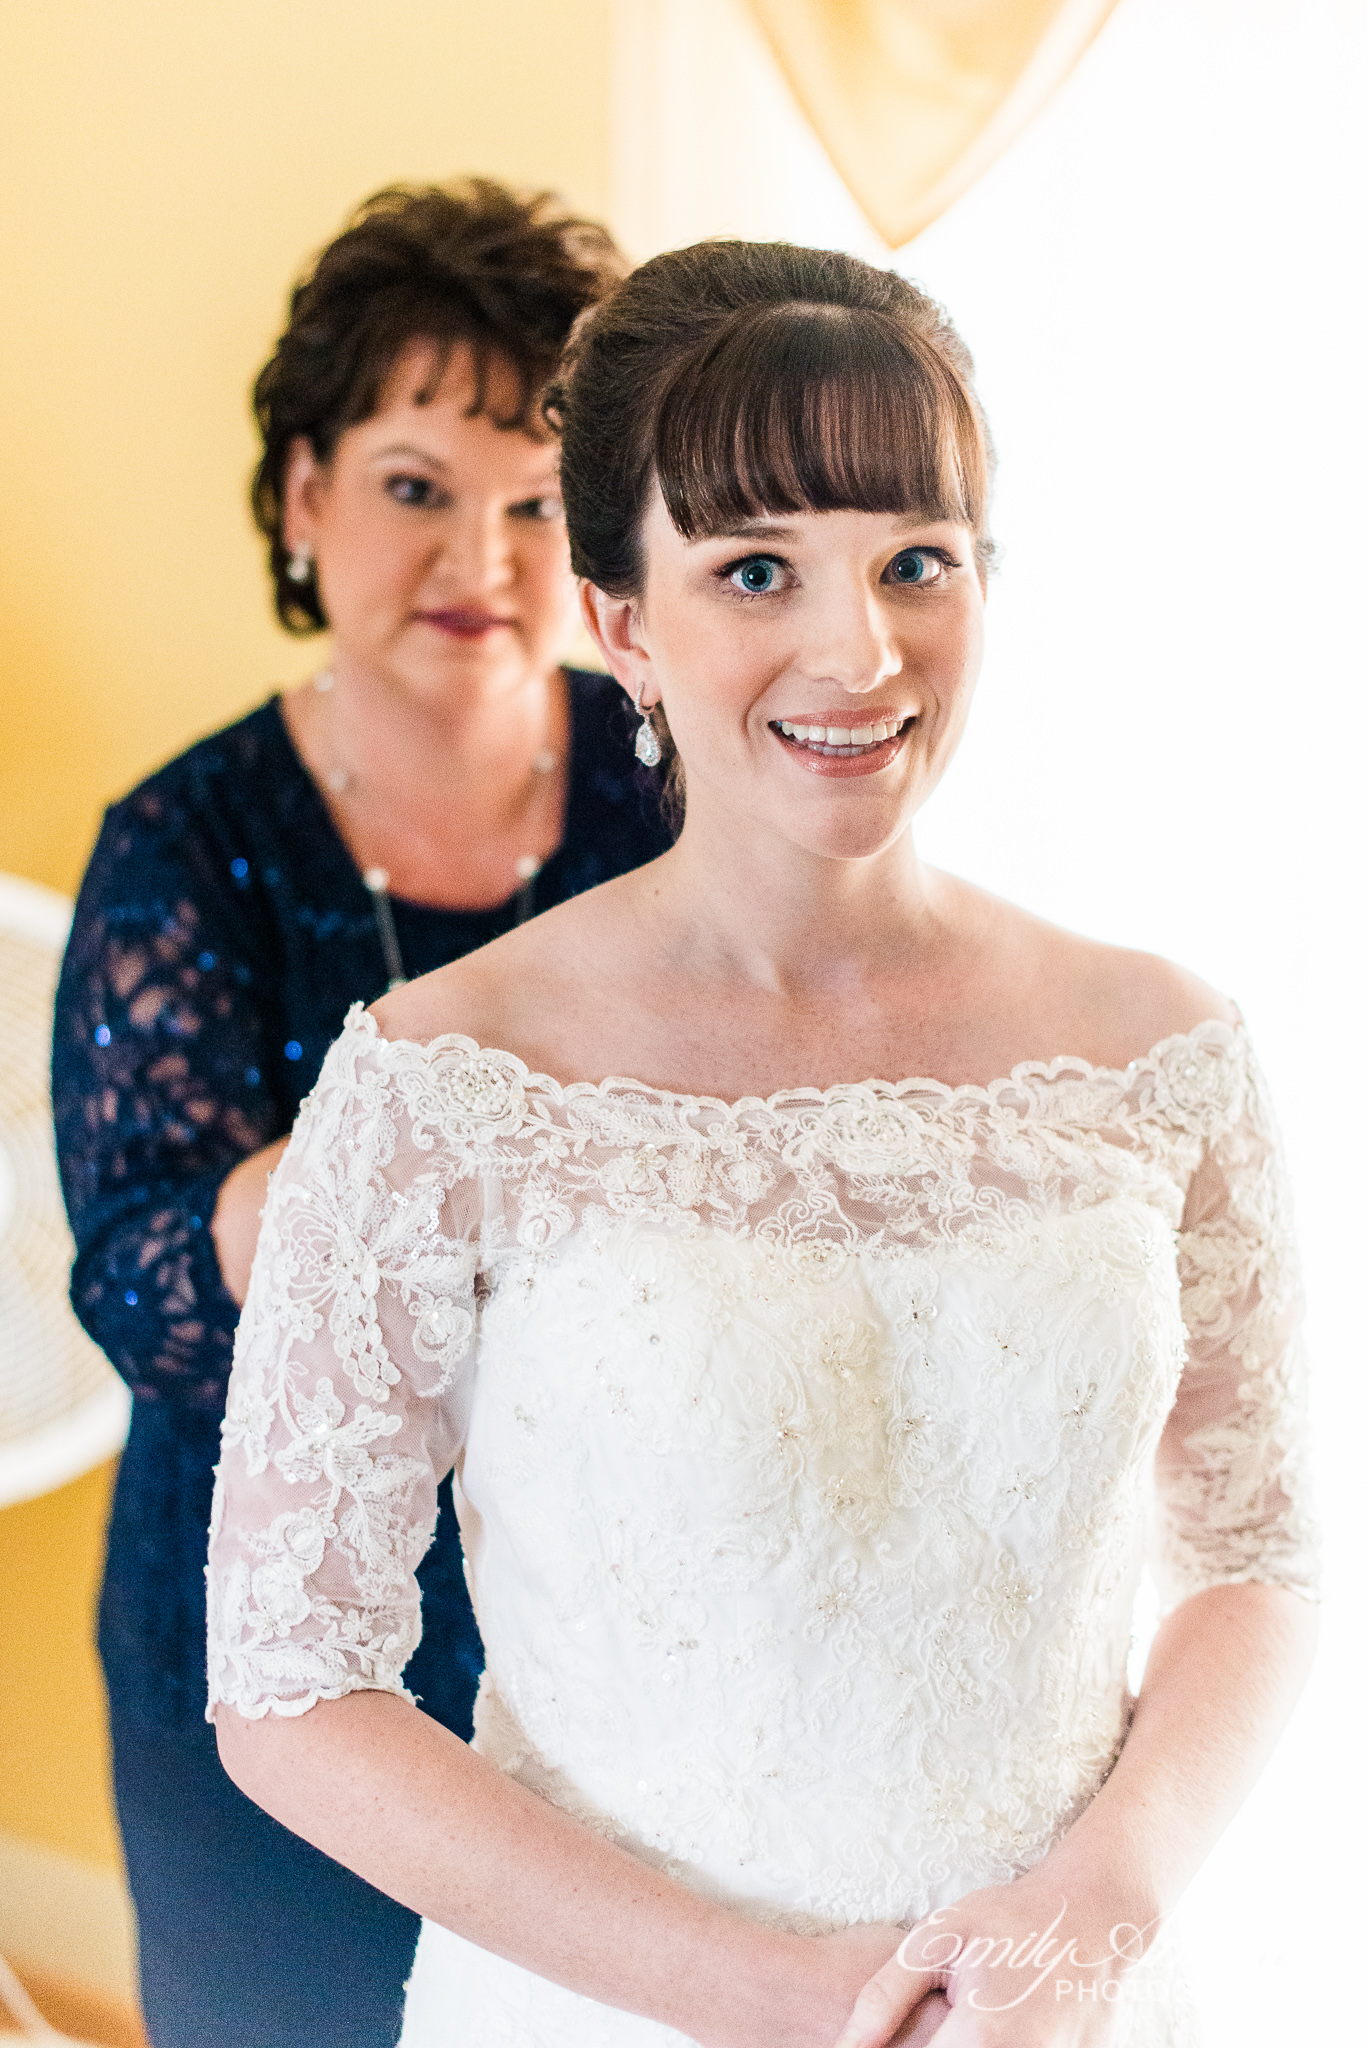 A bride smiles at the camera while the mother of the bride helps her get dressed before her wedding ceremony at Amber Grove near Richmond, Virginia